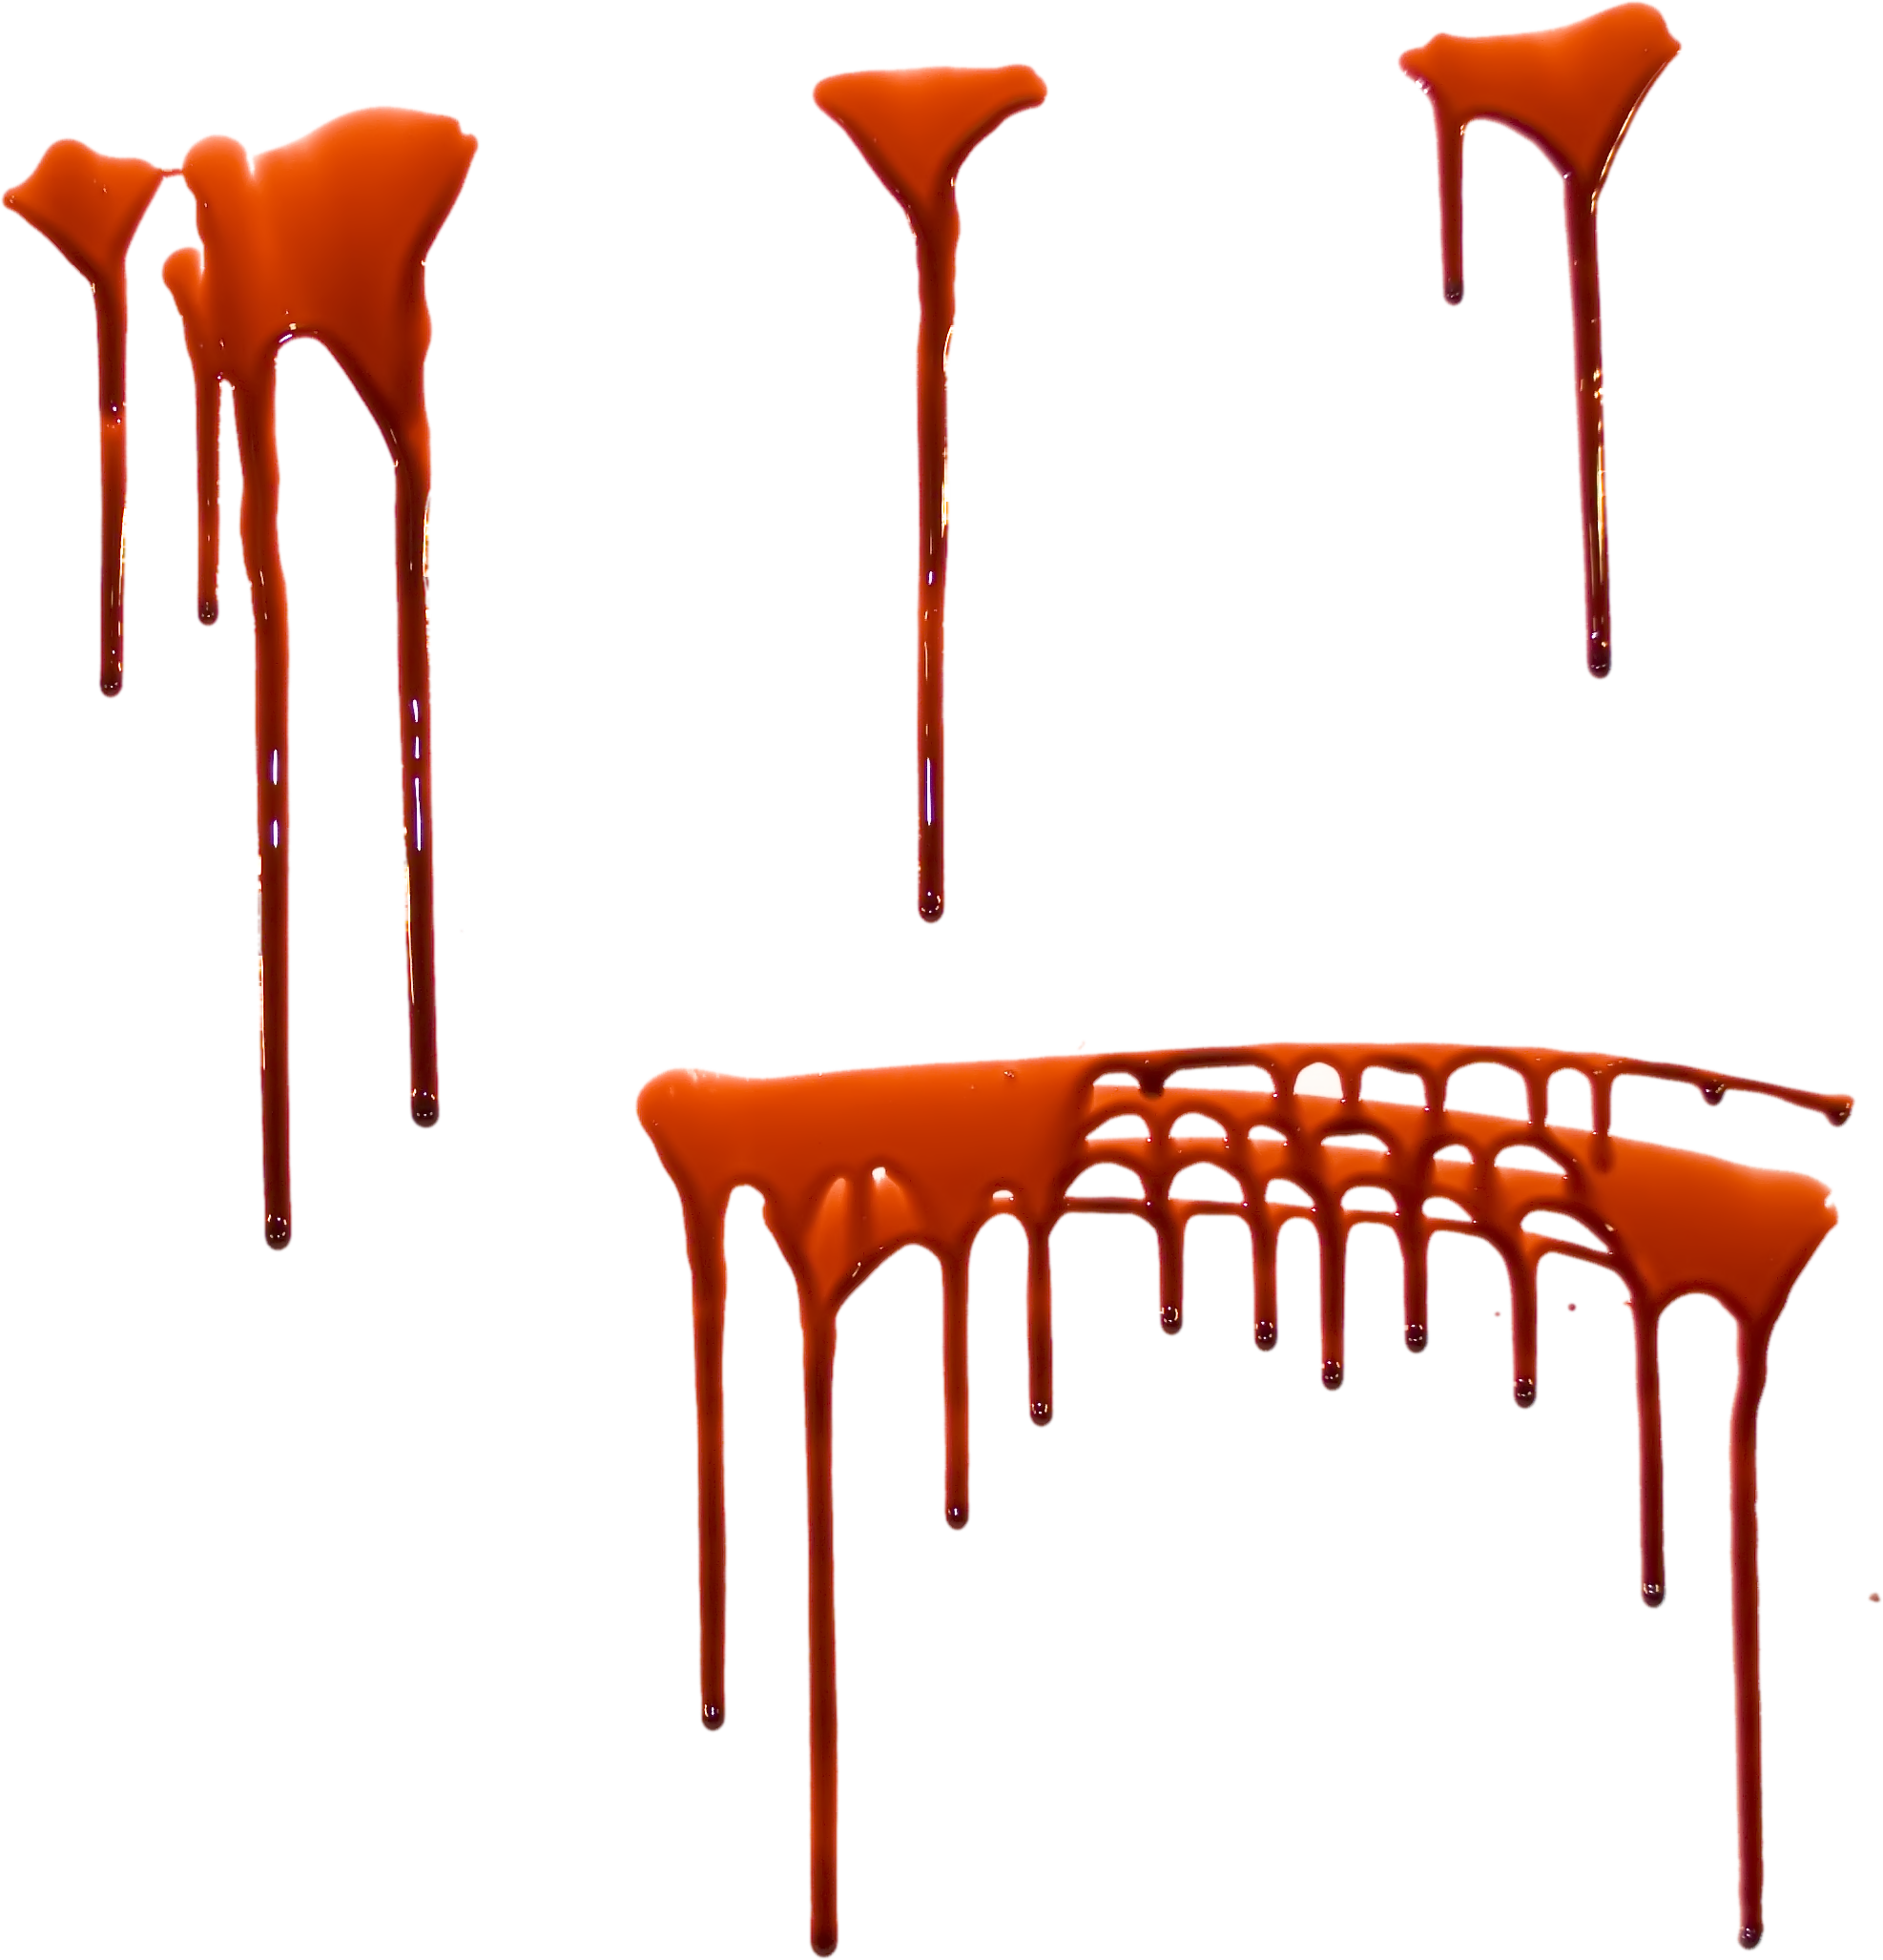 Realistic blood dripping png. Images free download splashes